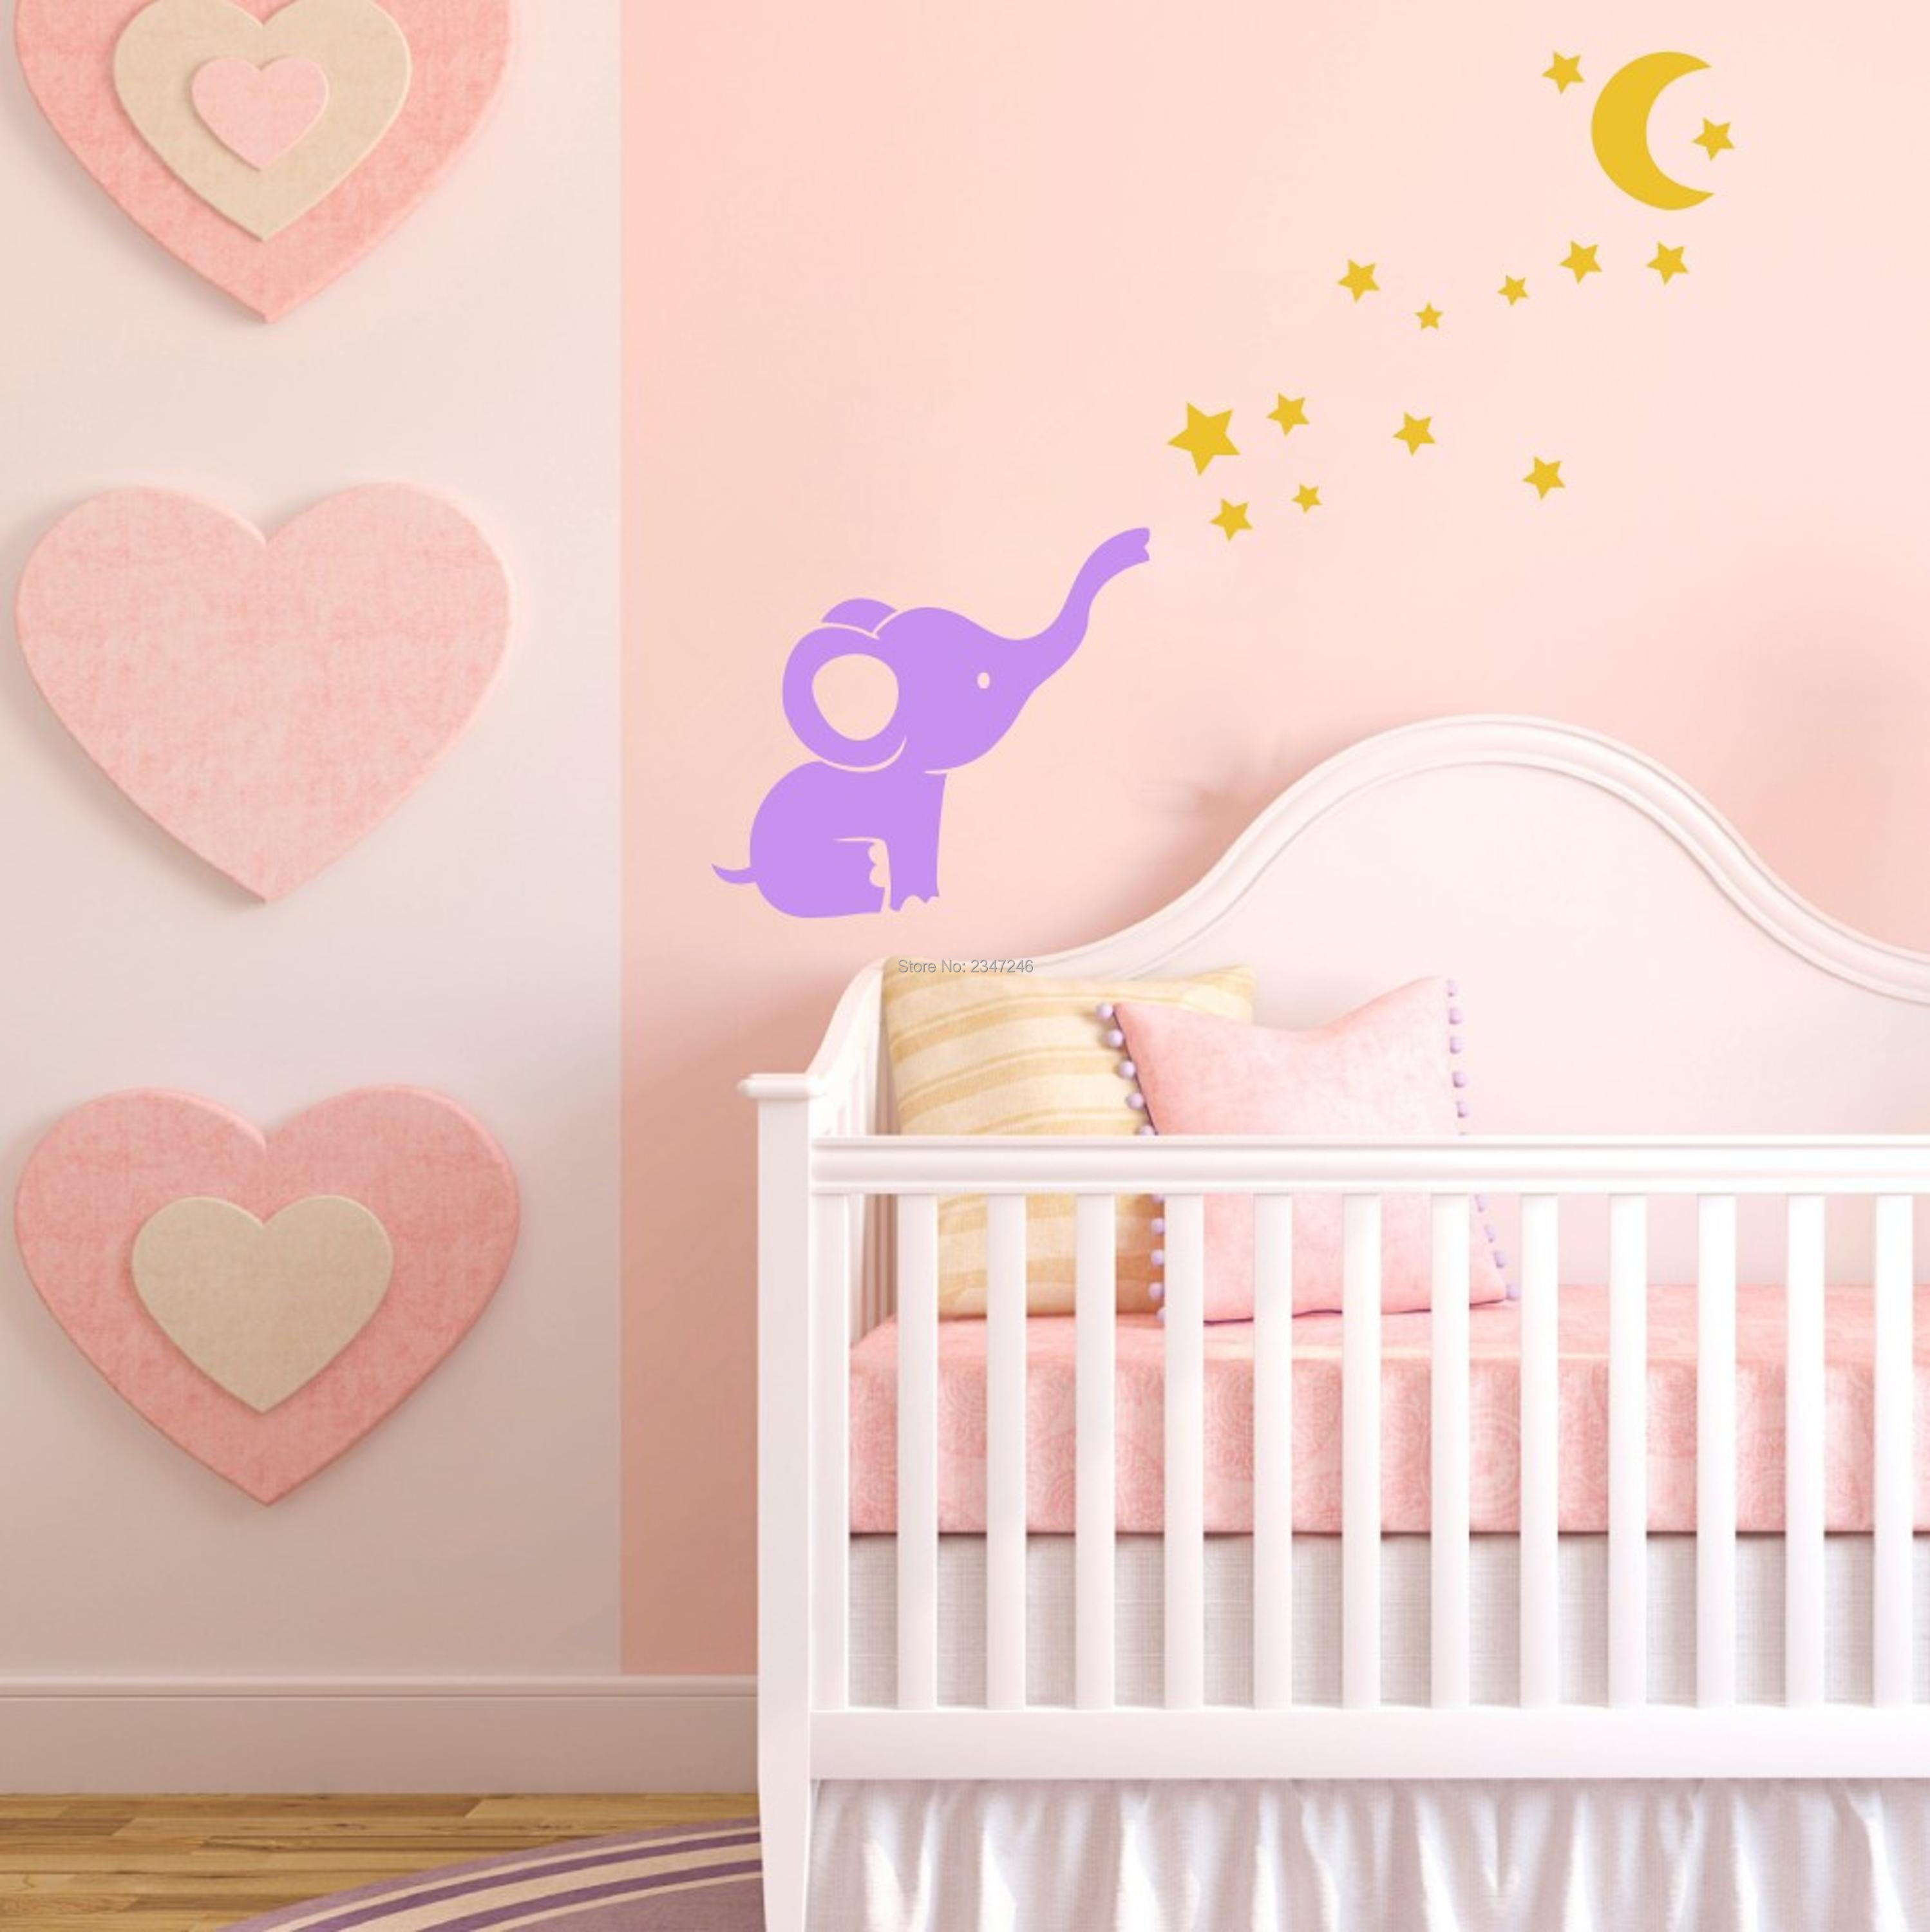 Cute little elephant cartoon art mural decals moon stars vinyl cute little elephant cartoon art mural decals moon stars vinyl wall stickers for baby room decor in wall stickers from home garden on aliexpress amipublicfo Image collections